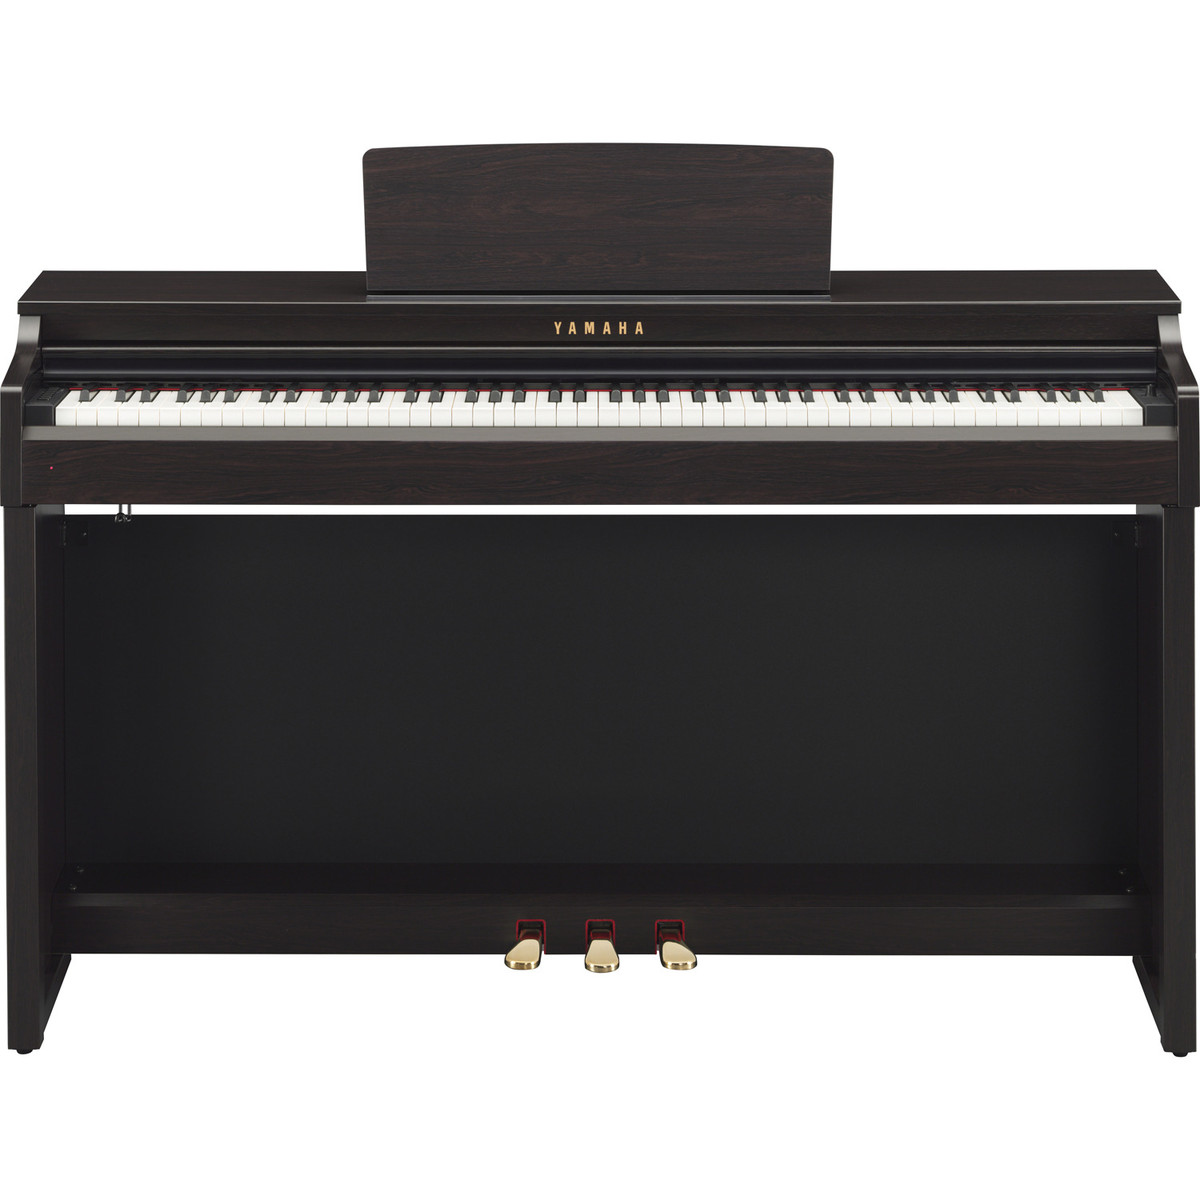 yamaha clavinova clp525 digital piano rosewood at. Black Bedroom Furniture Sets. Home Design Ideas